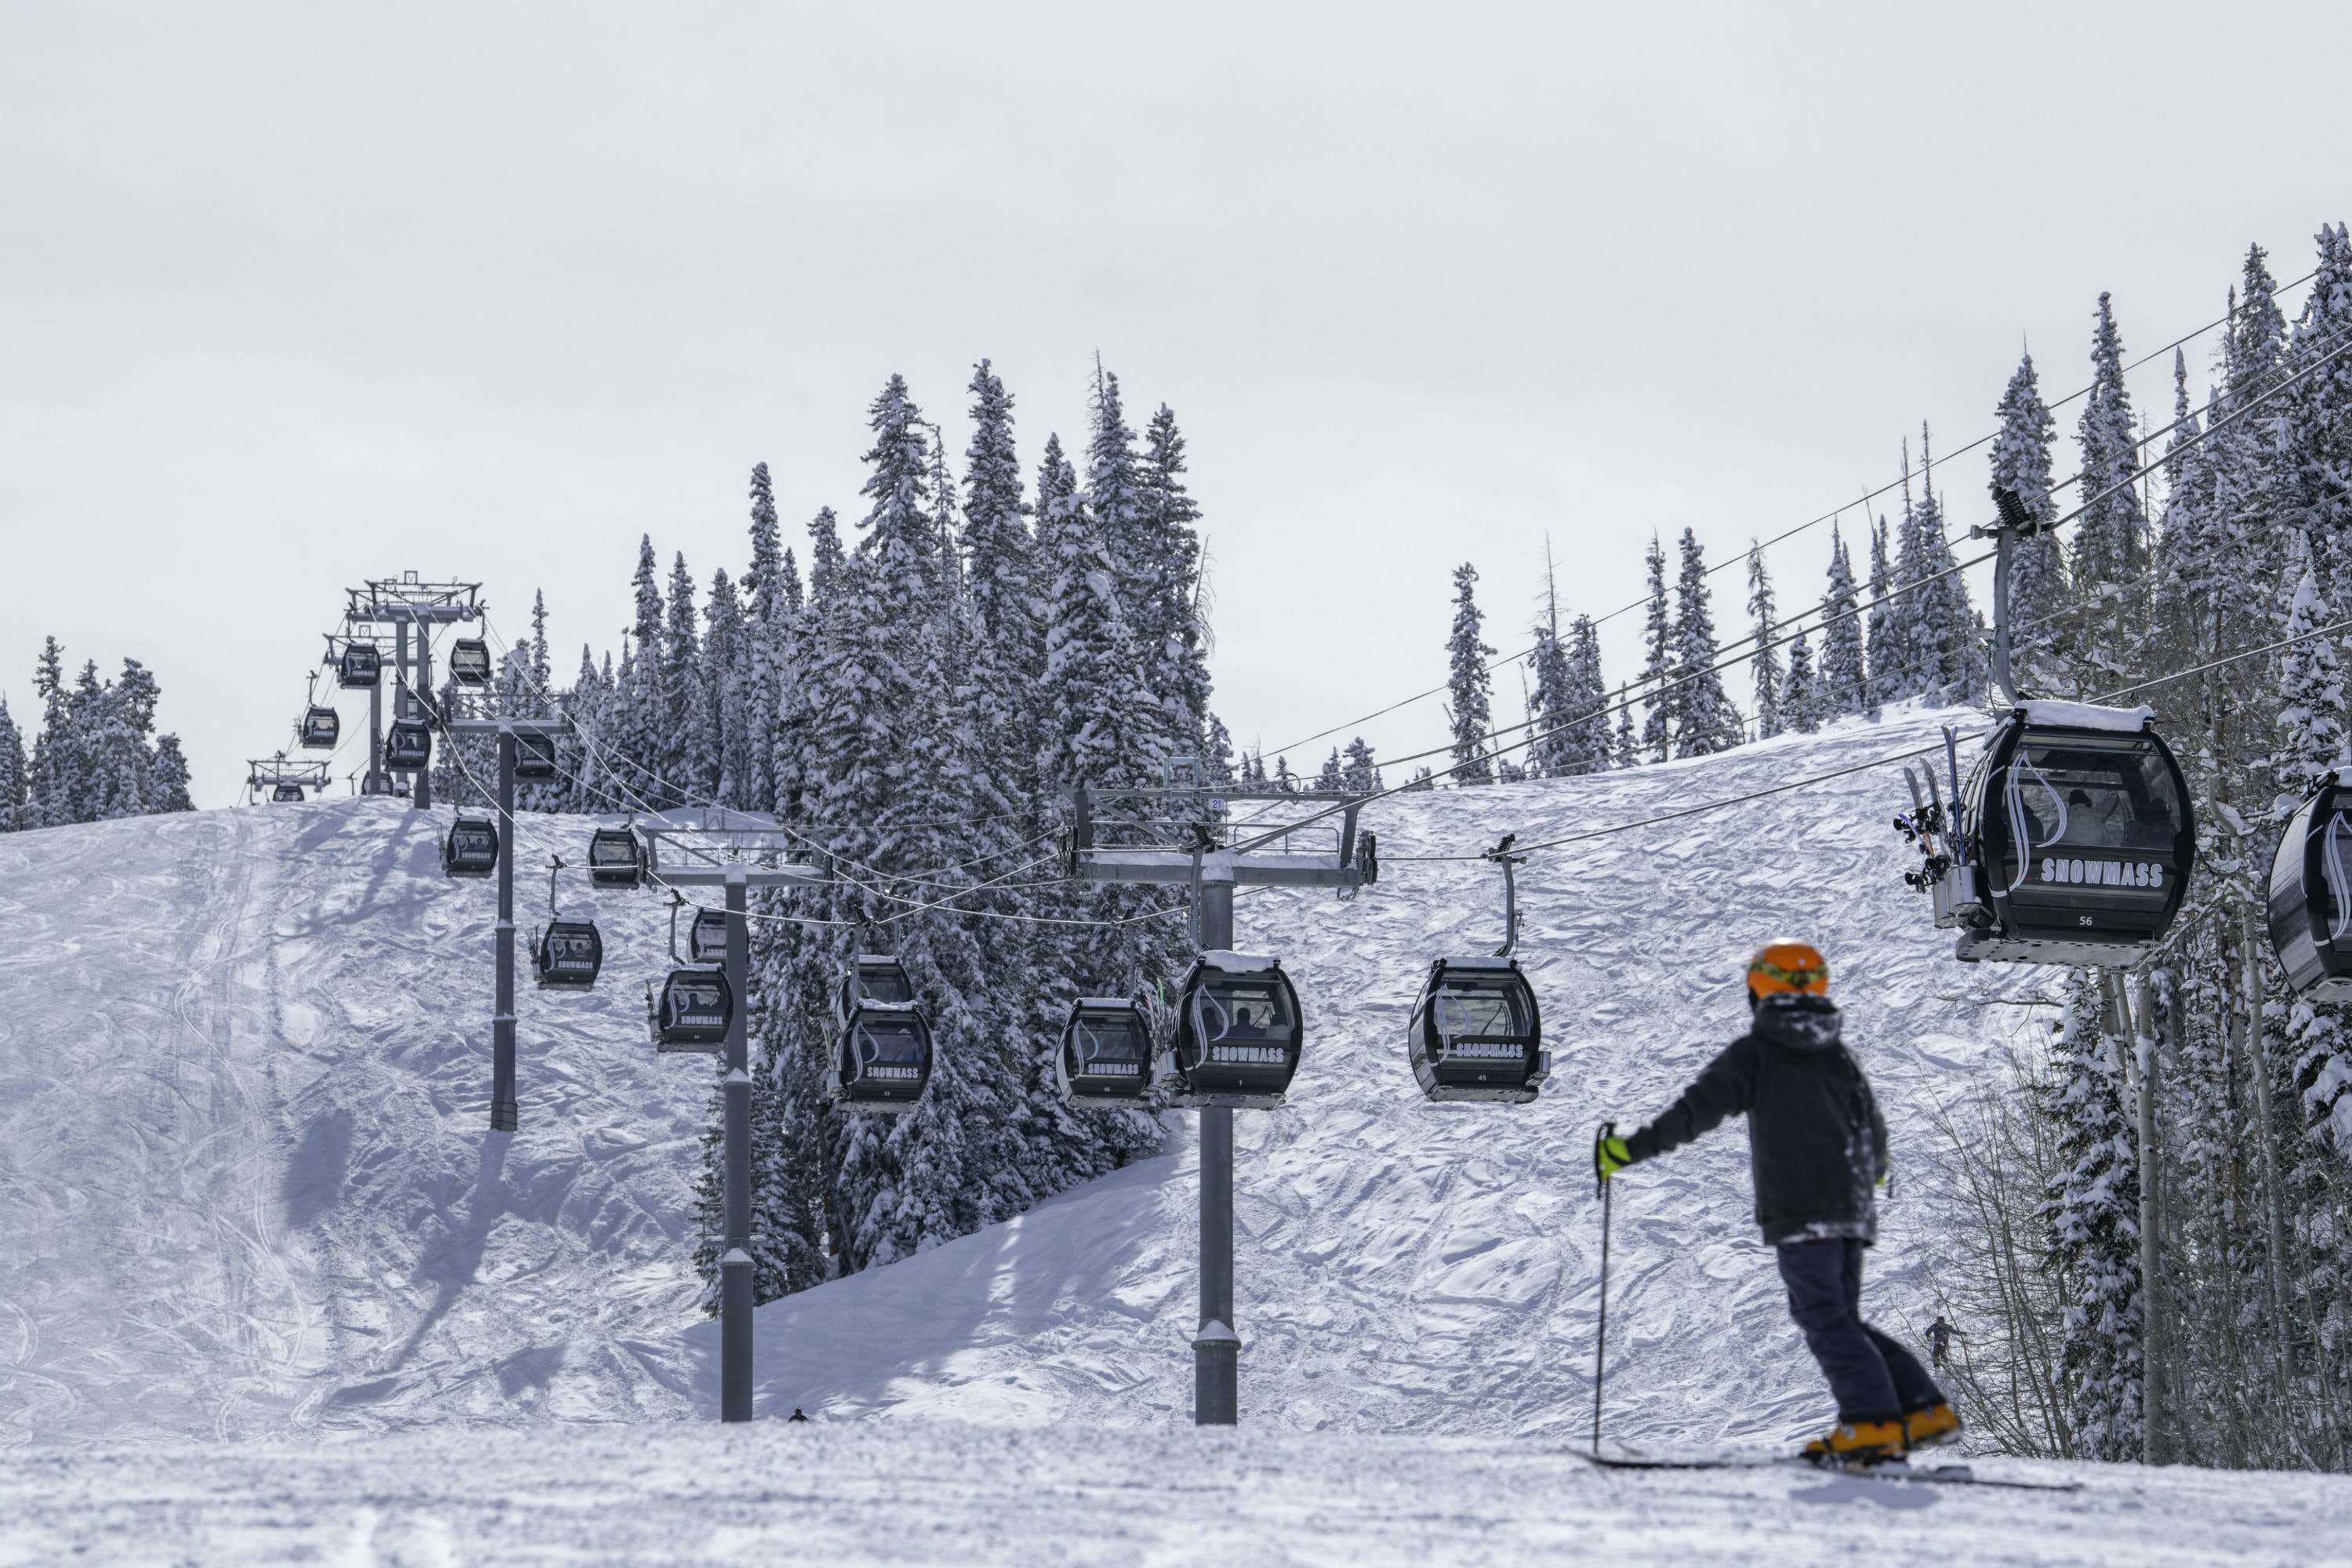 Ski resorts across the United States cater to kids.